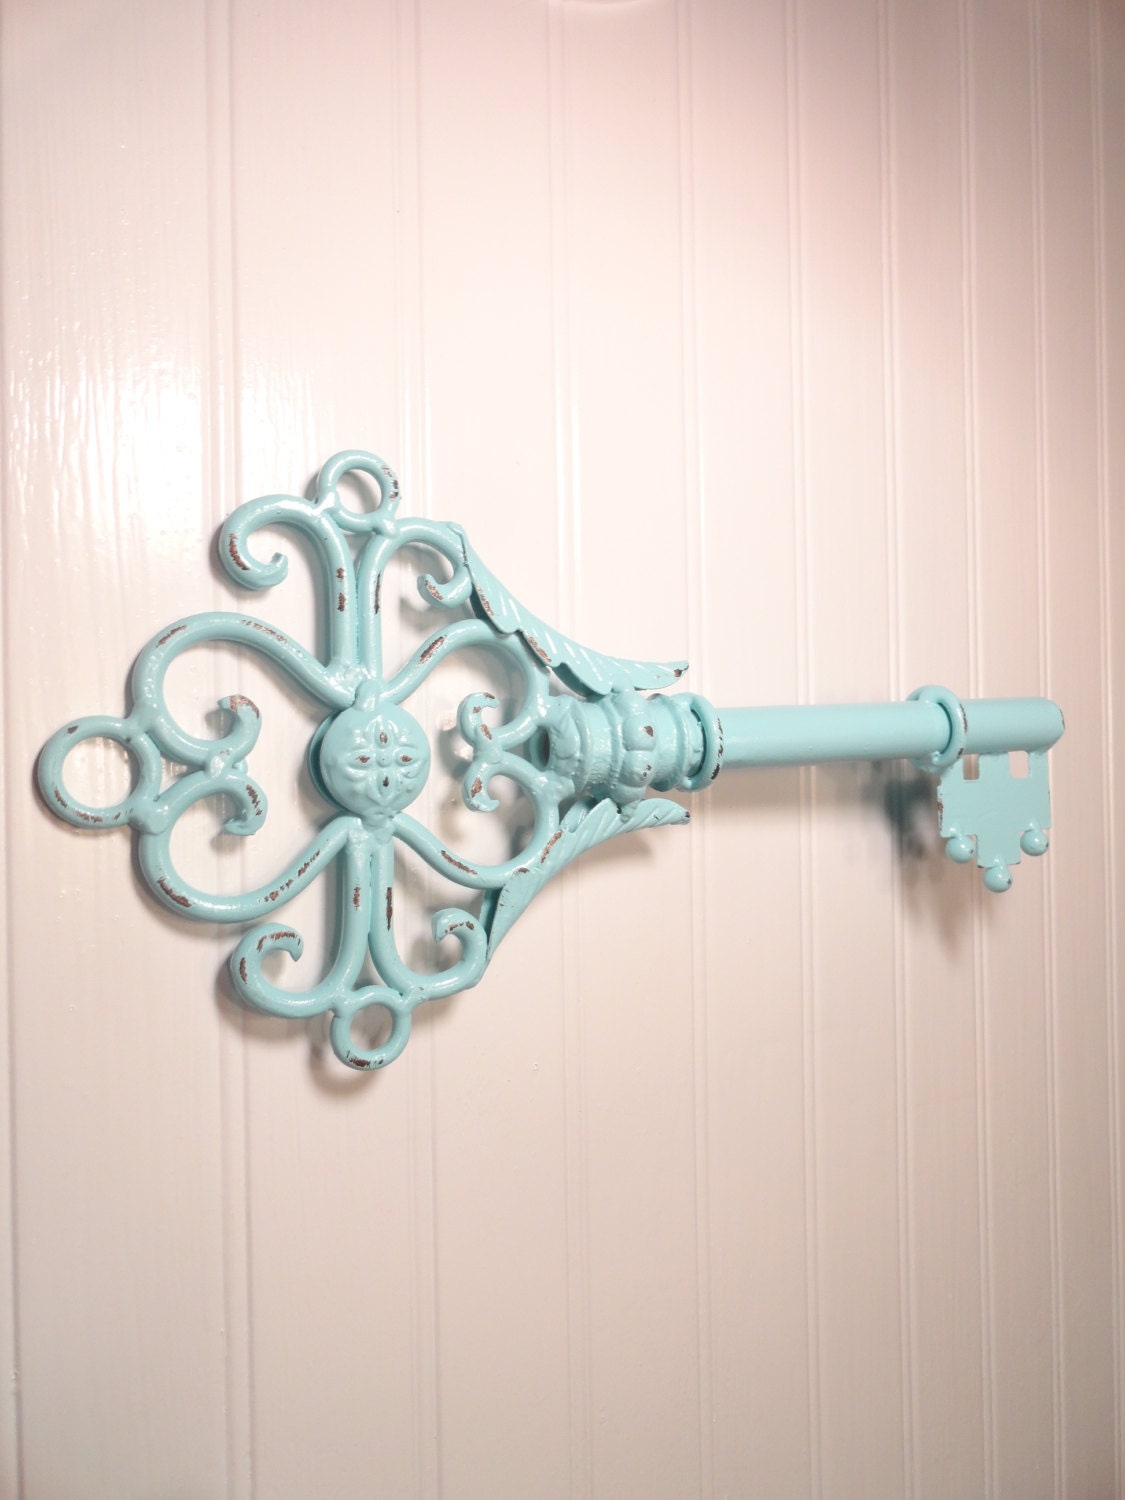 Metal Skeleton Key Wall Decor Shabby Chic Wrought Iron Wall